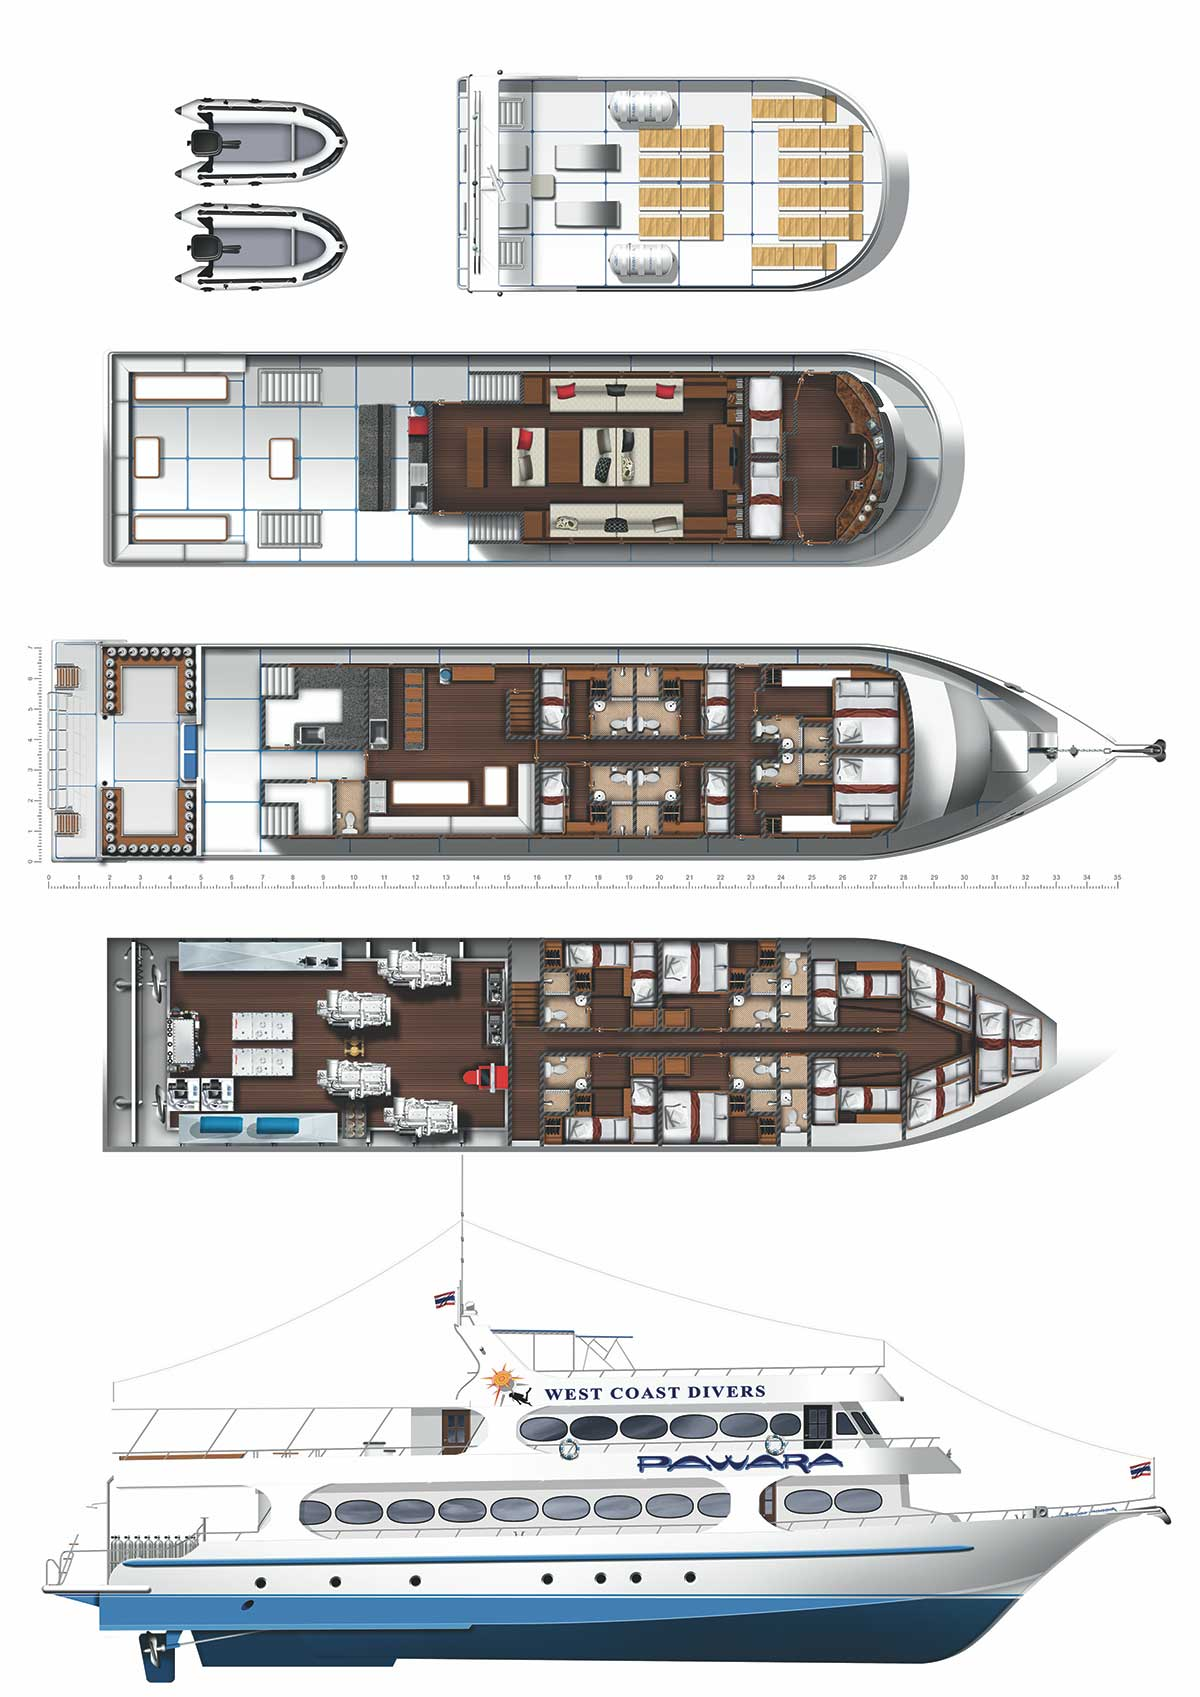 Pawara Liveaboard Layouts